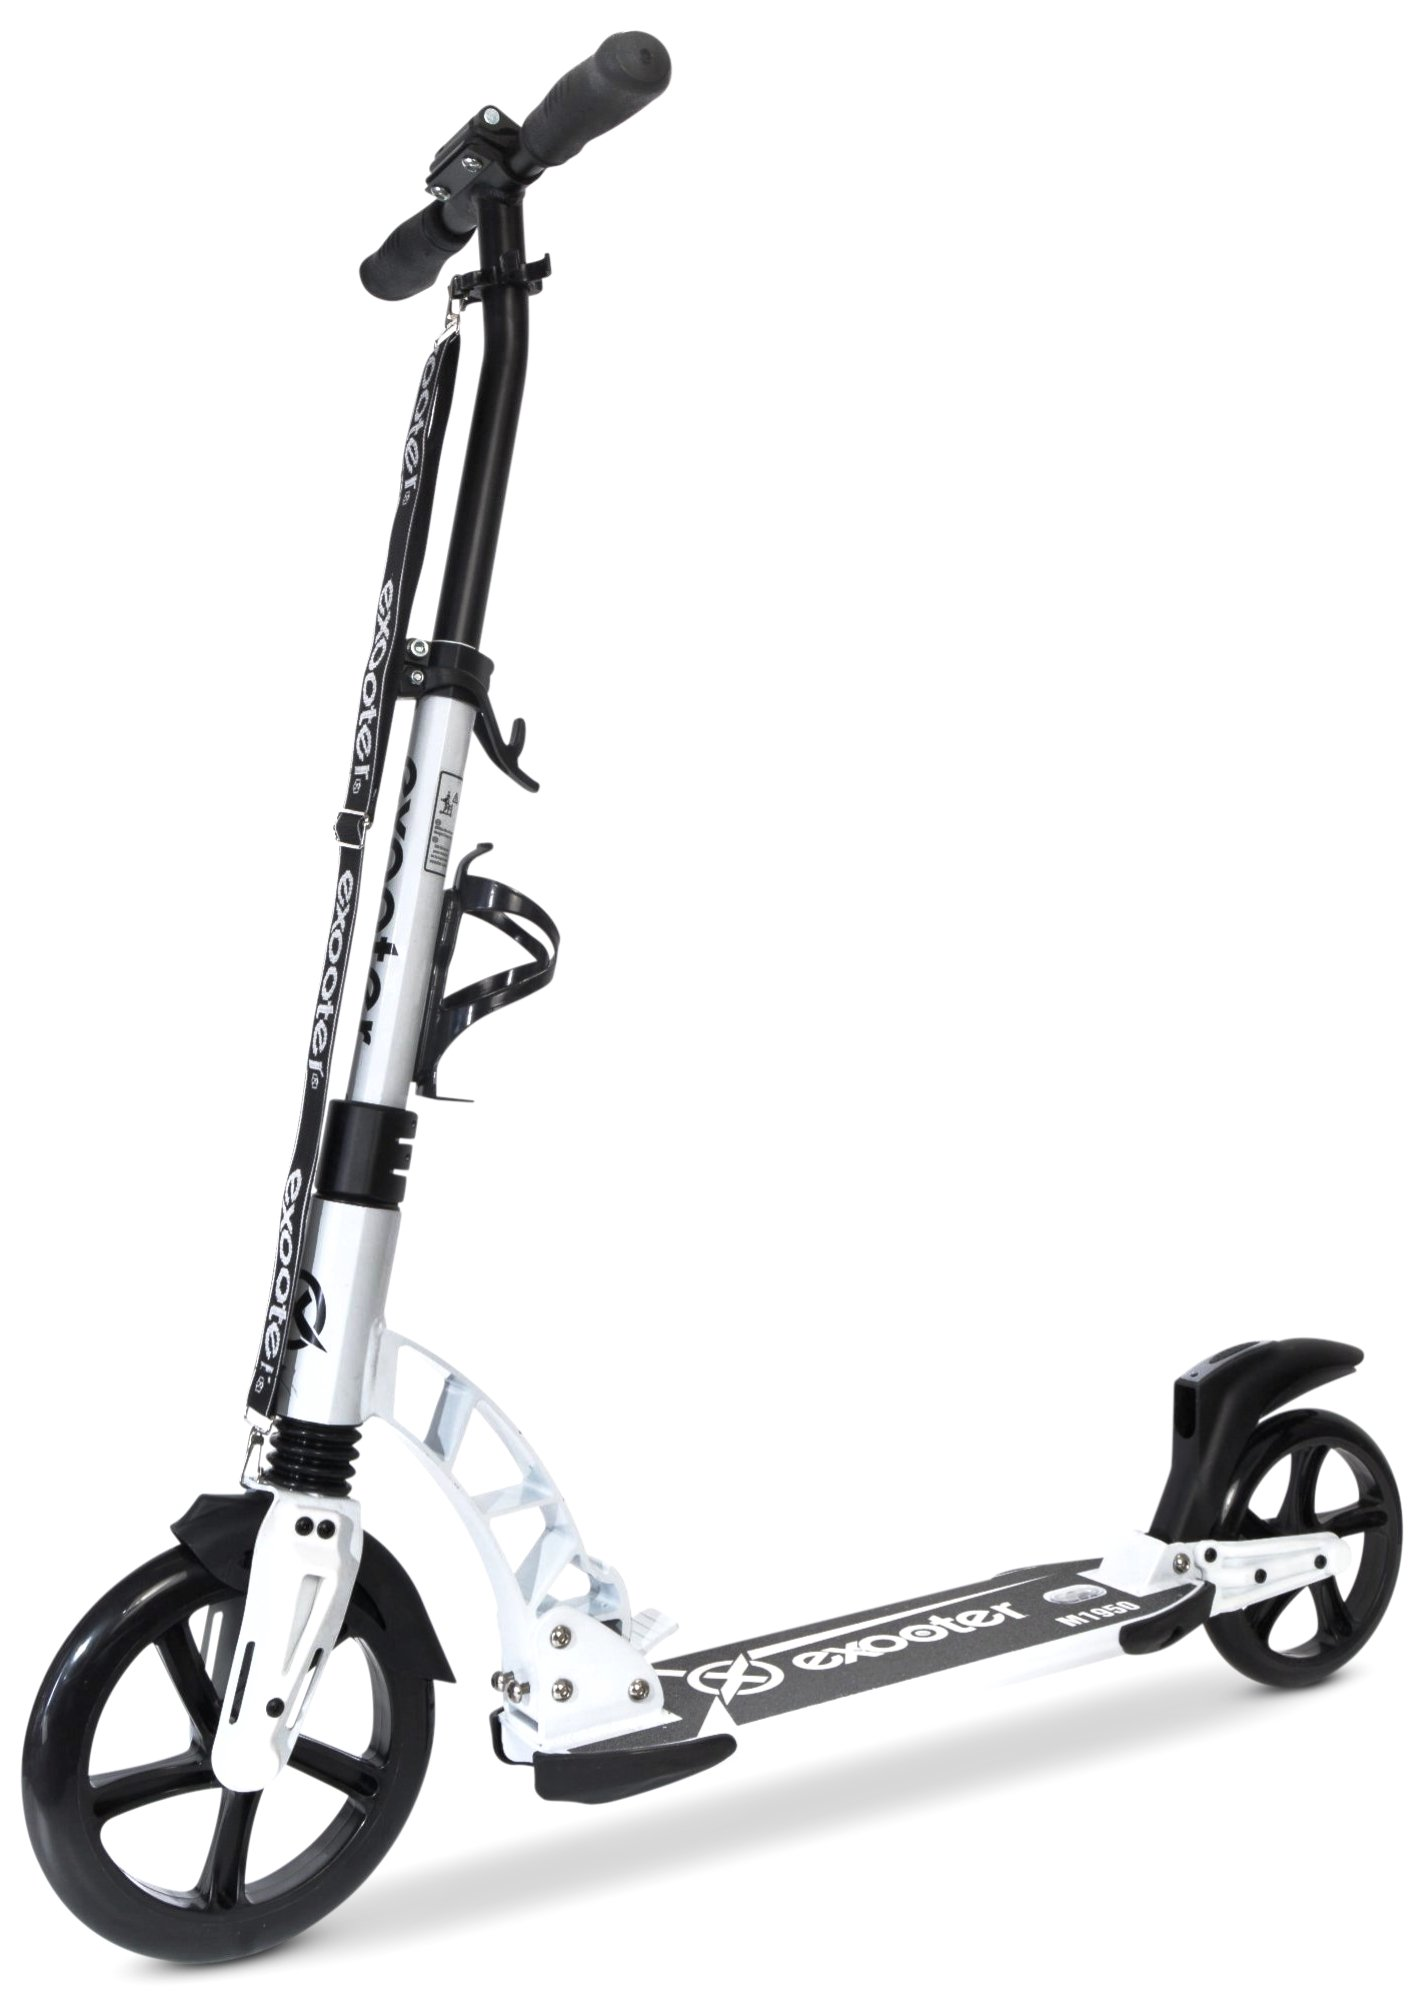 EXOOTER M1950 8XL Manual Adult Cruiser Kick Scooter with Dual Suspension Shocks and 240mm/200mm Big Wheels.